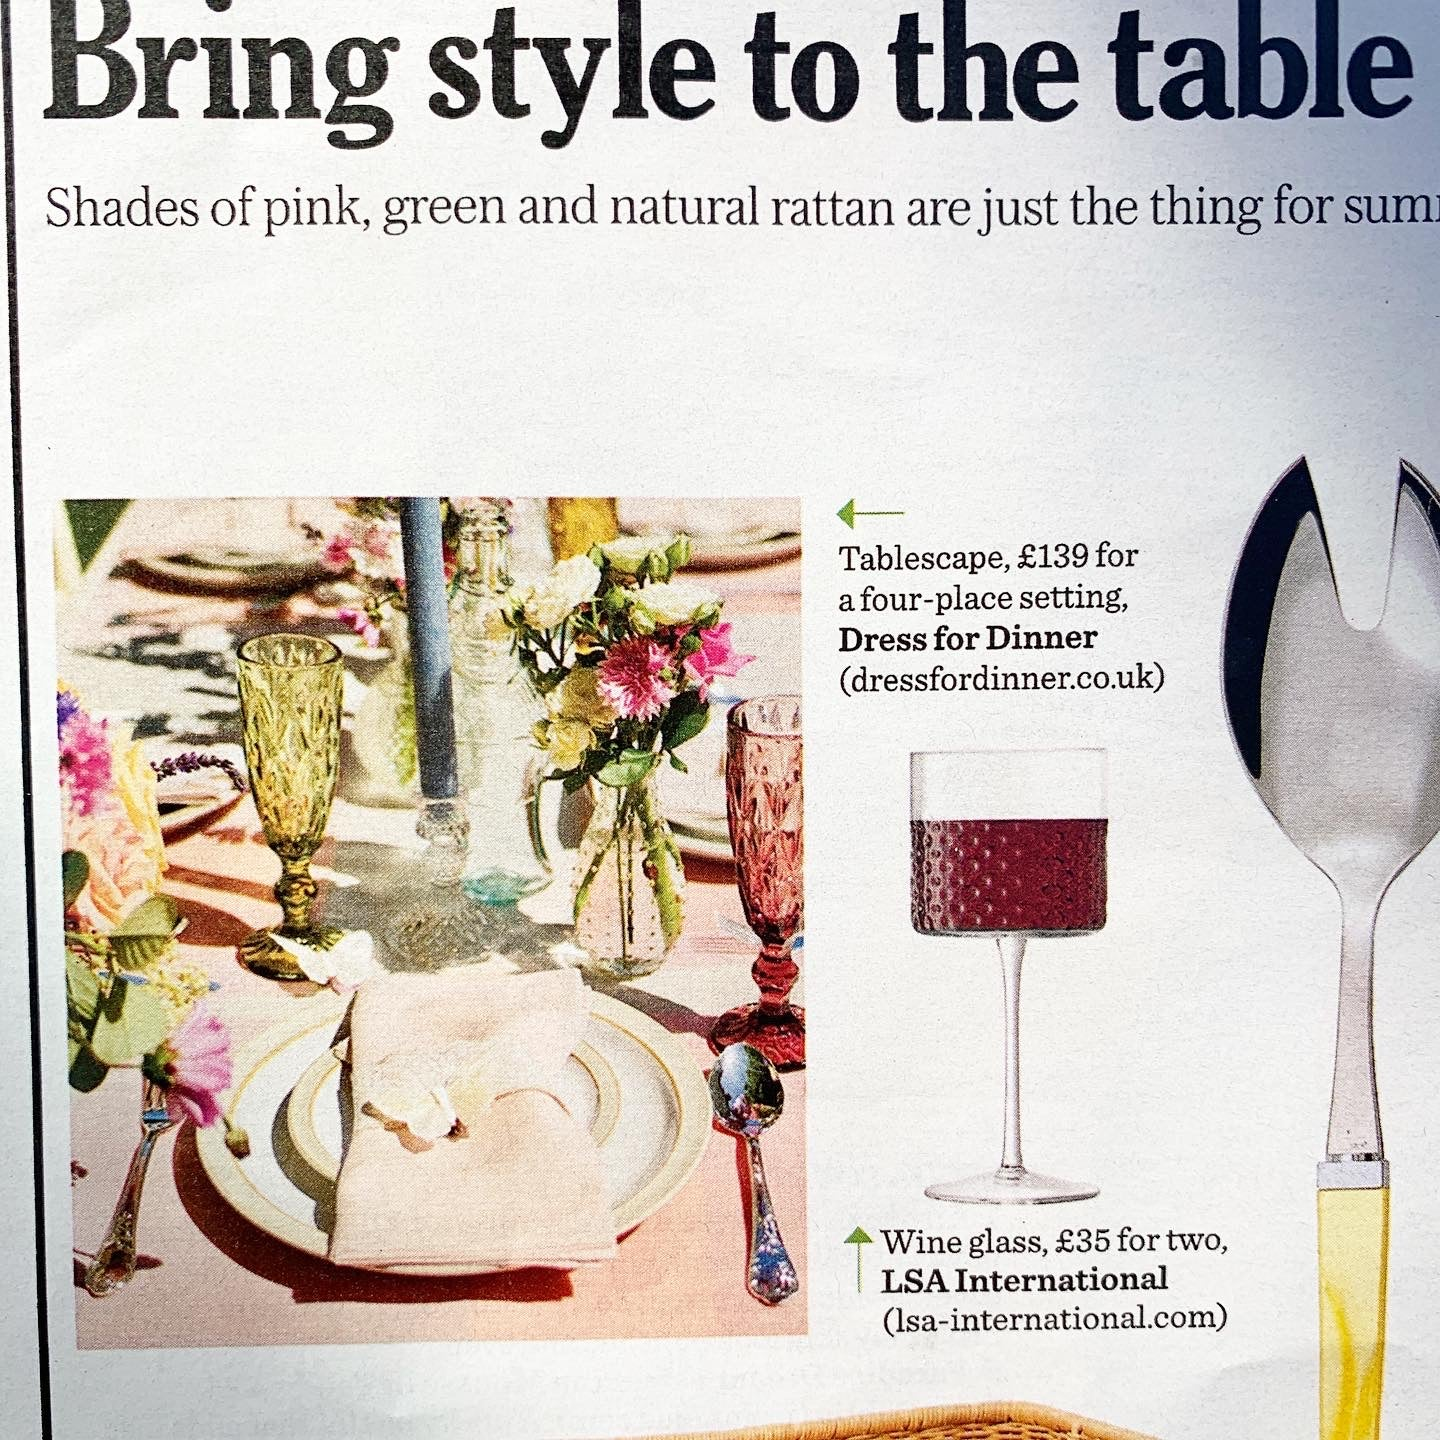 Magazine article featuring Dress For Dinner, Stella Magazine July 2020